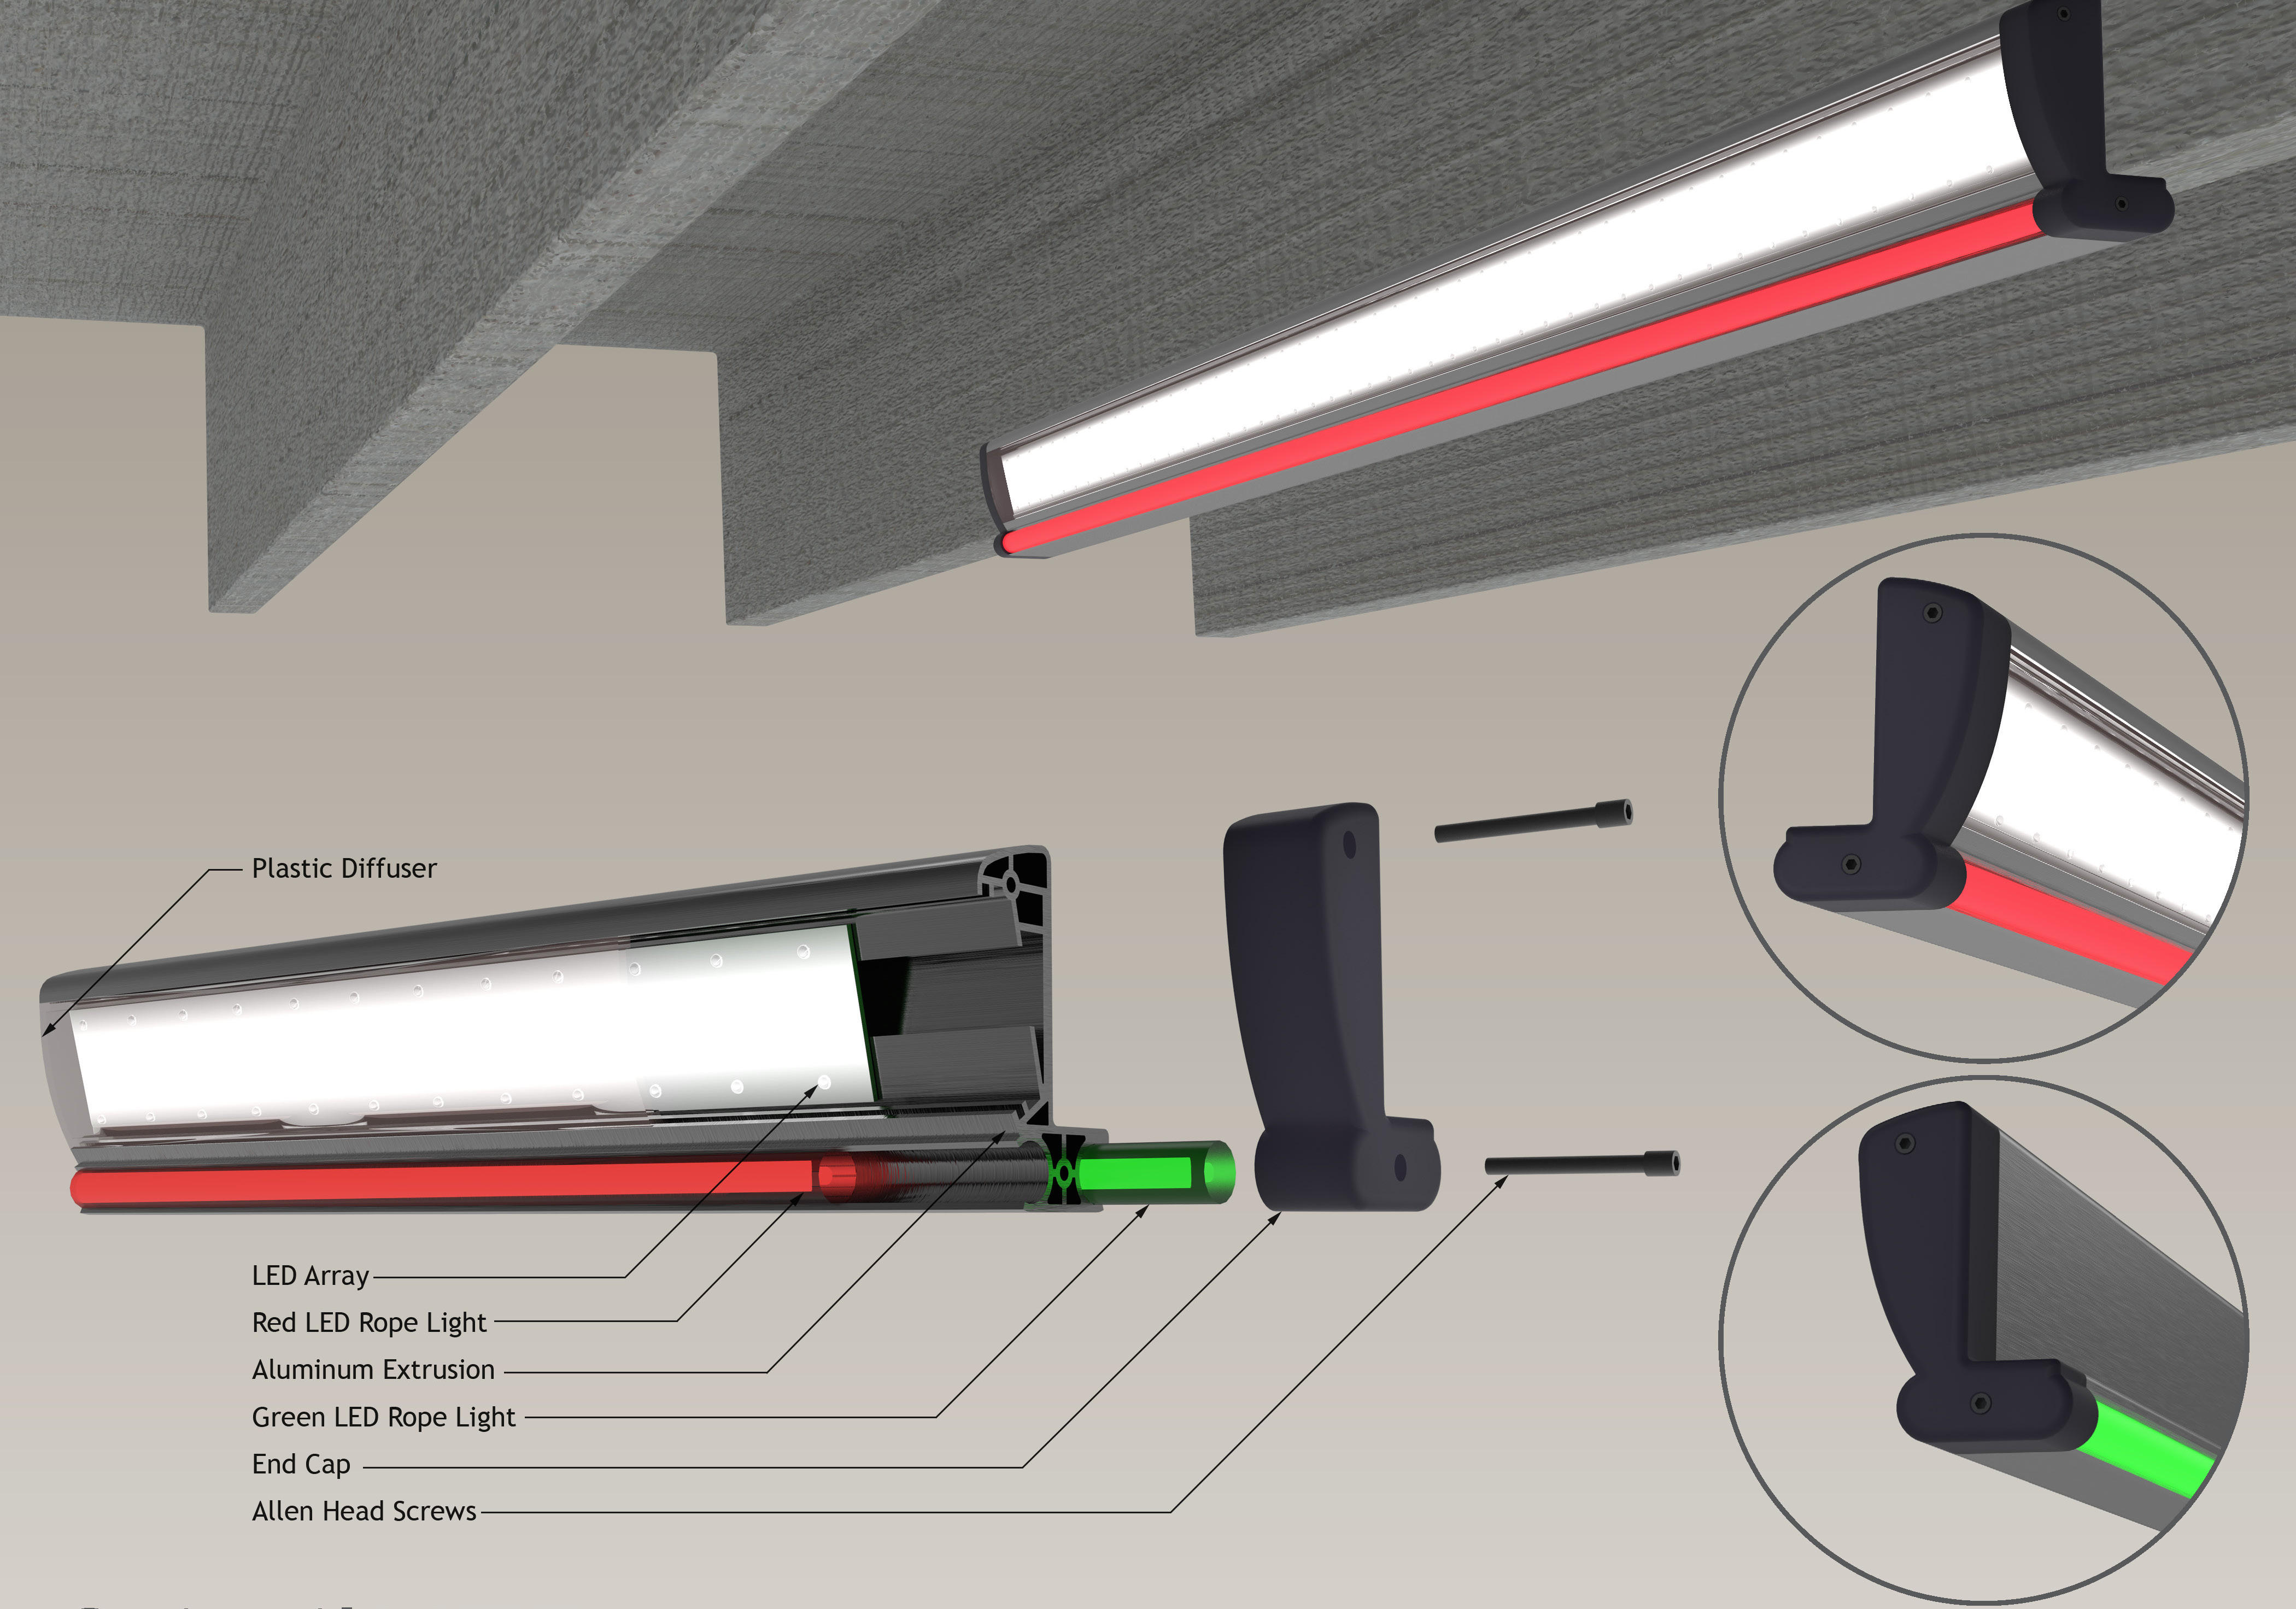 2015 Second Place Winner — The ScintilLITE extruded aluminum light fixture housing for parking garages.